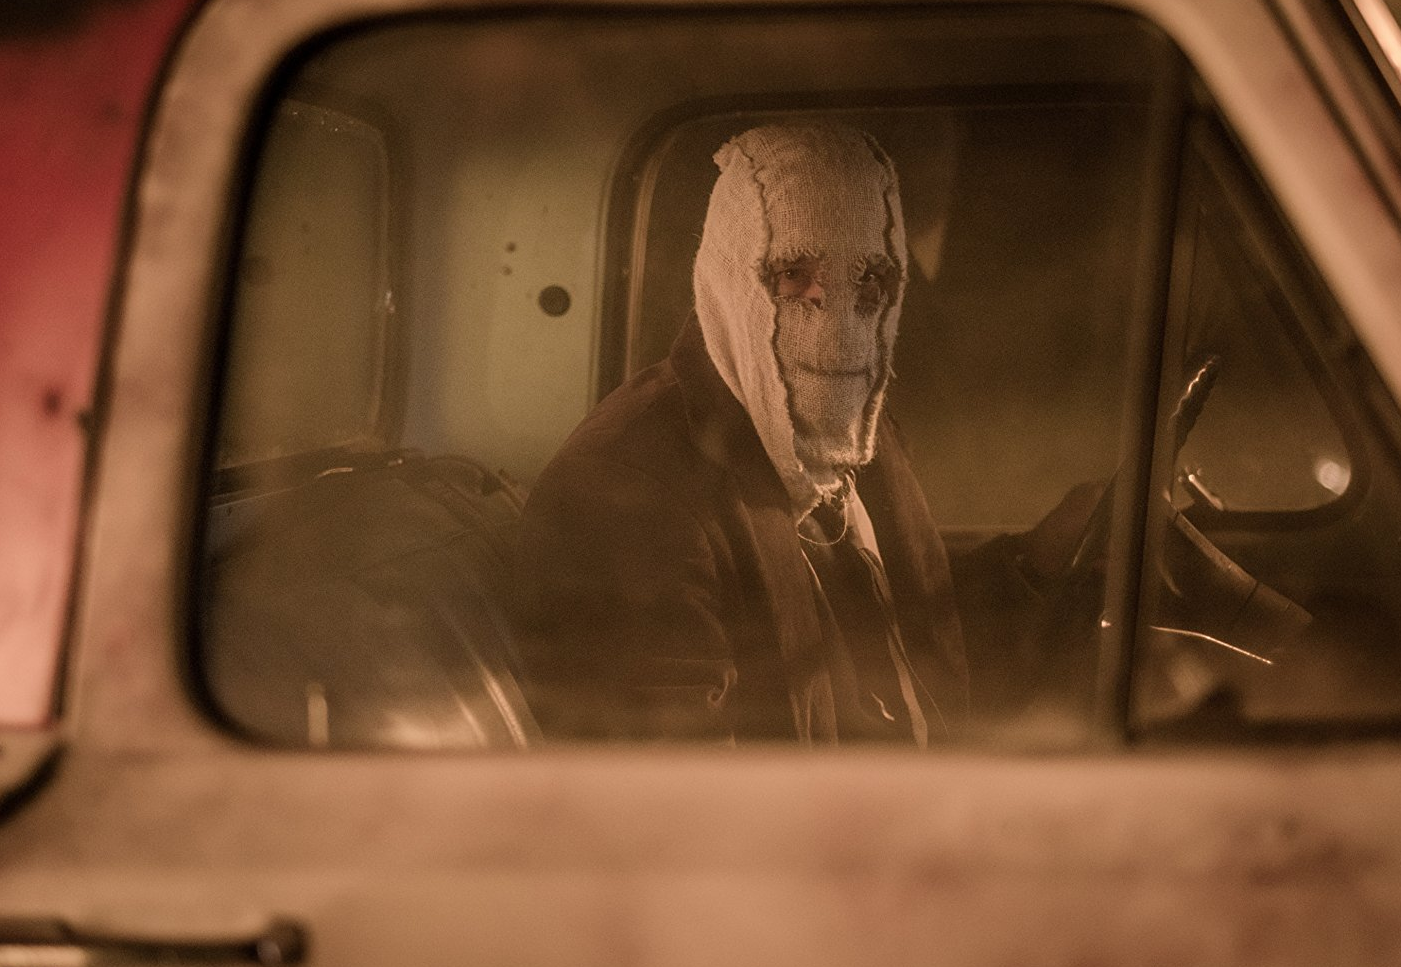 a review of the strangers a horror film by bryan bertino Director johannes roberts' 'the strangers: prey at night' is a slow but chilling, horror thriller, inspired from director bryan bertino's 2008-released film of the same genre called - 'the strangers.